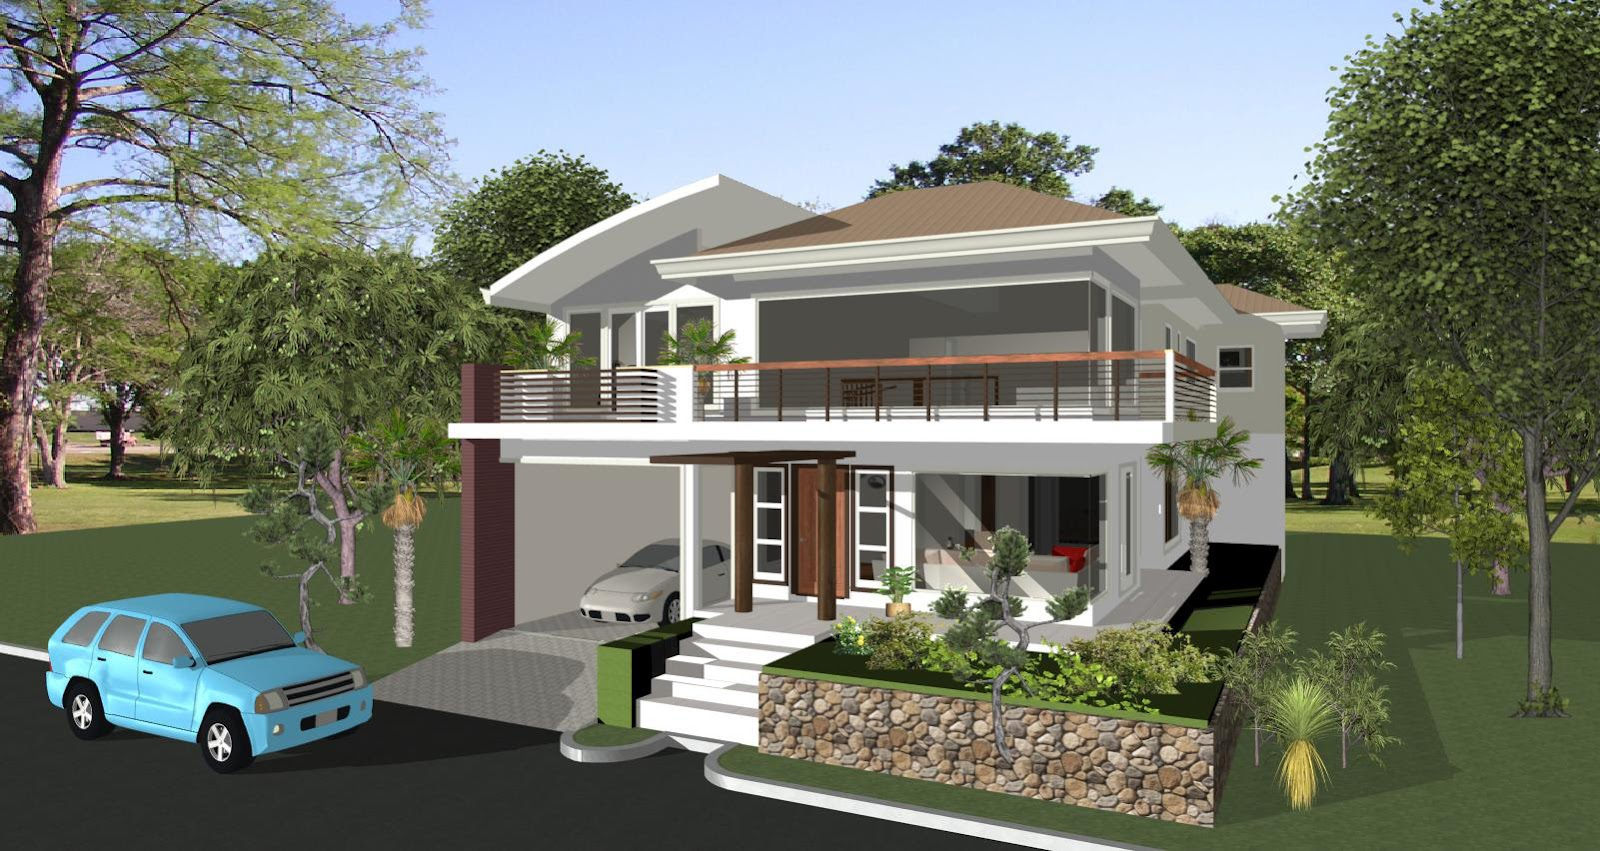 House designs in the philippines in iloilo by erecre group Home design house plans